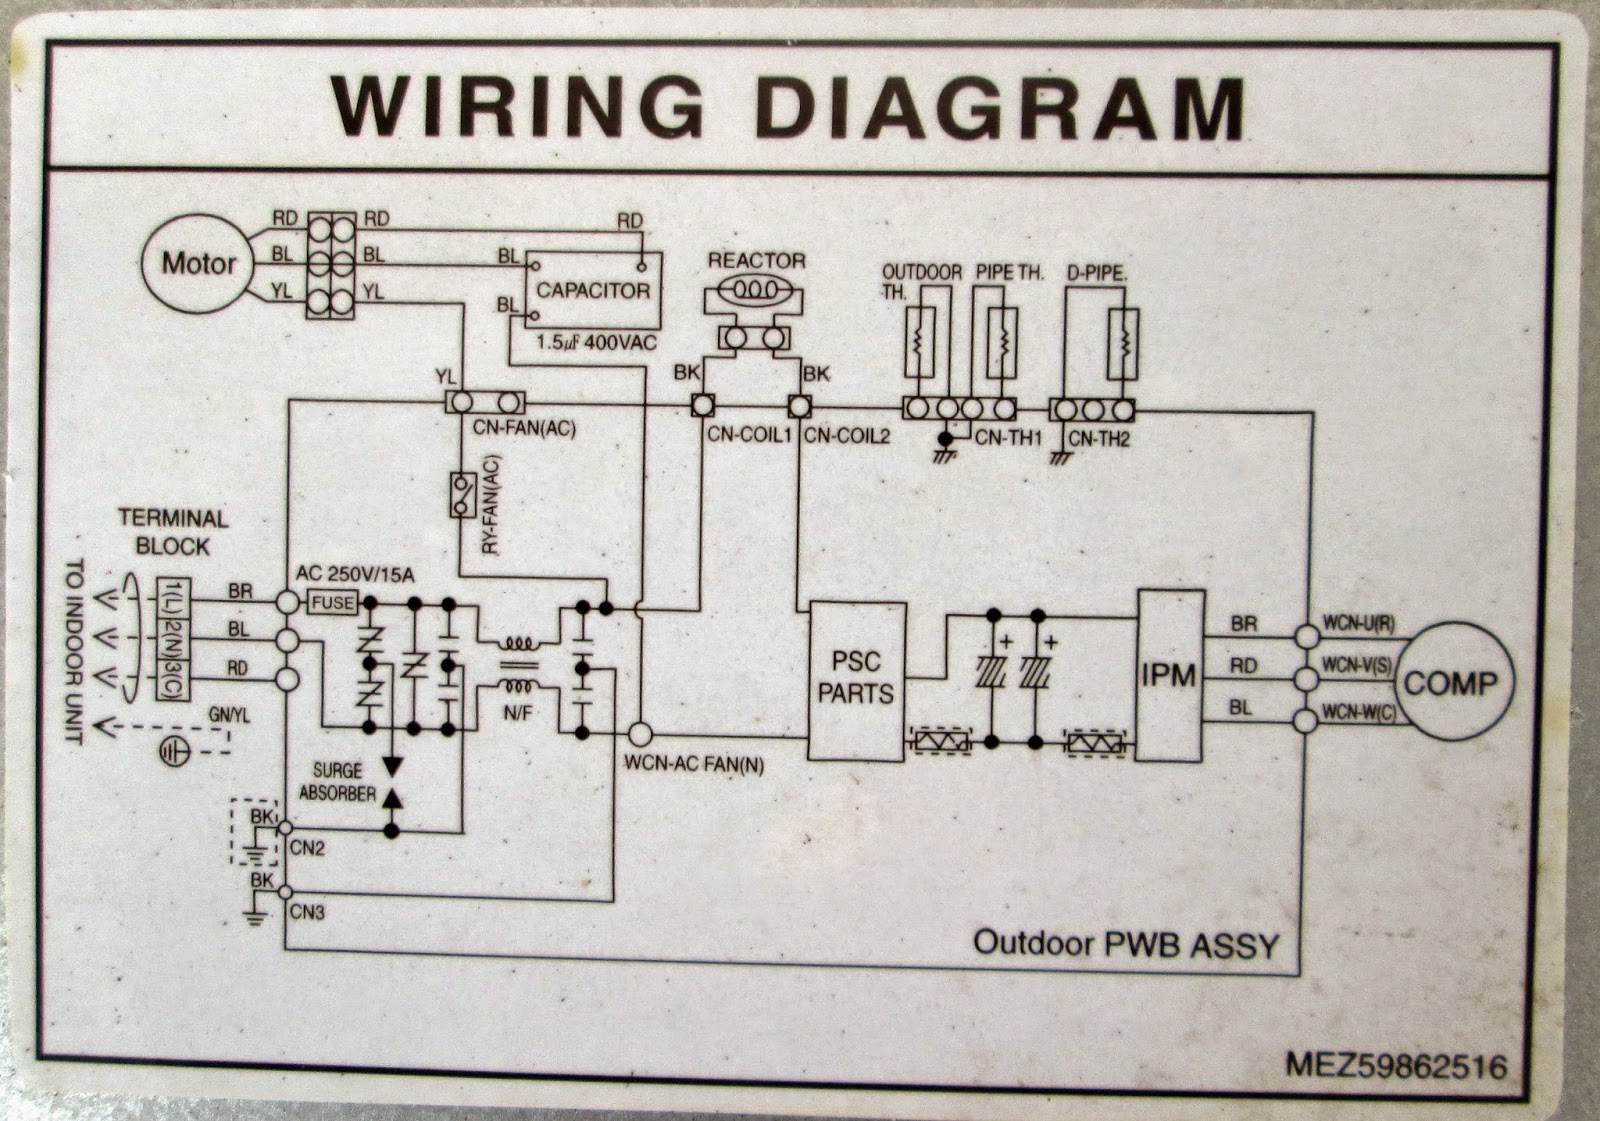 split system air con wiring diagram wiring diagram advance split system air conditioner wiring diagram split air con wiring diagram [ 1600 x 1121 Pixel ]